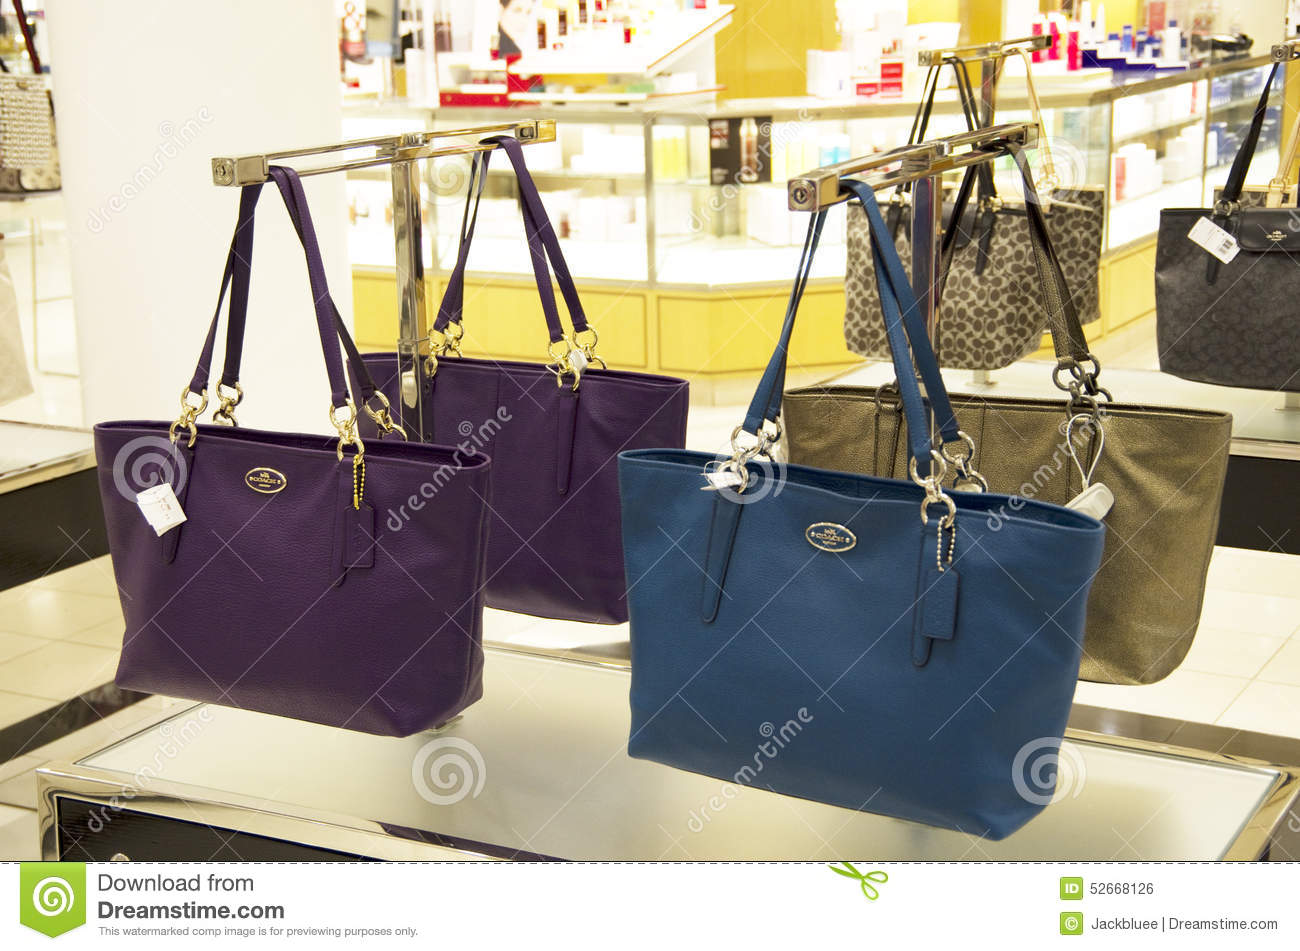 e268460cfb5f Coach handbags and purses were sold in Macy s department store in Seattle.